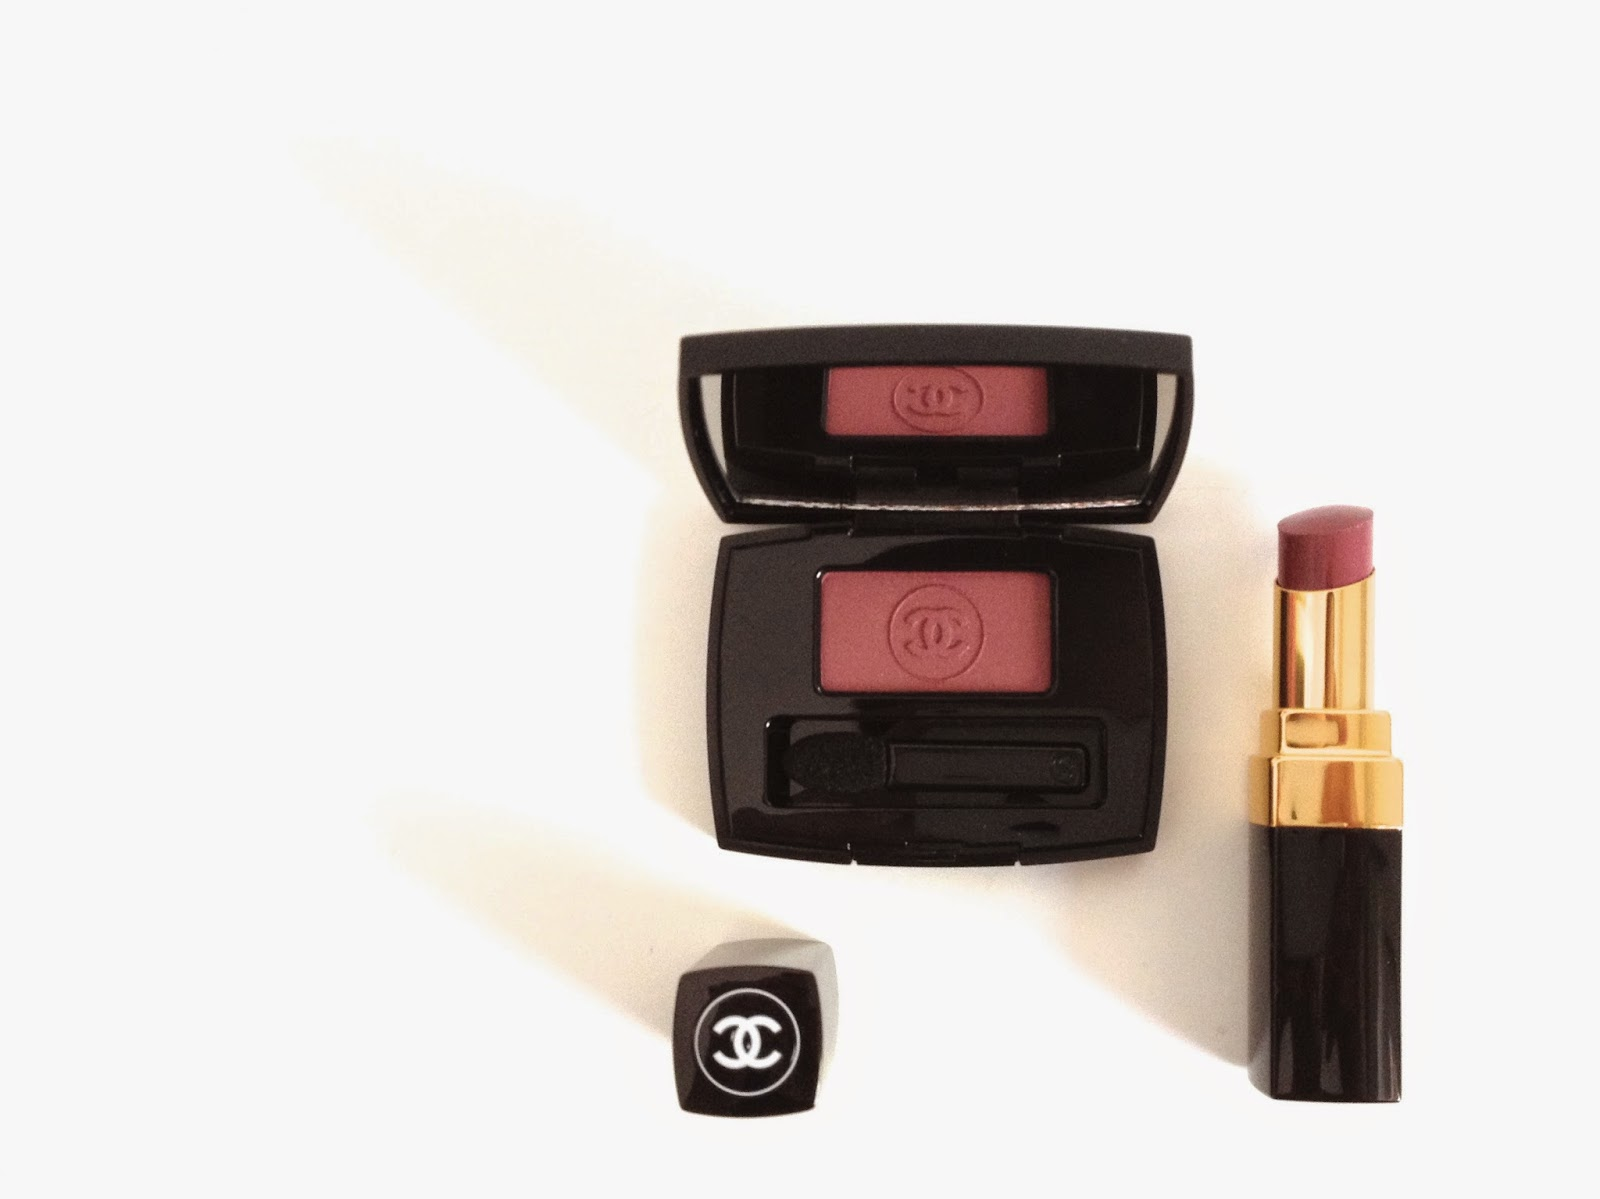 Chanel Makeup Fall 2014